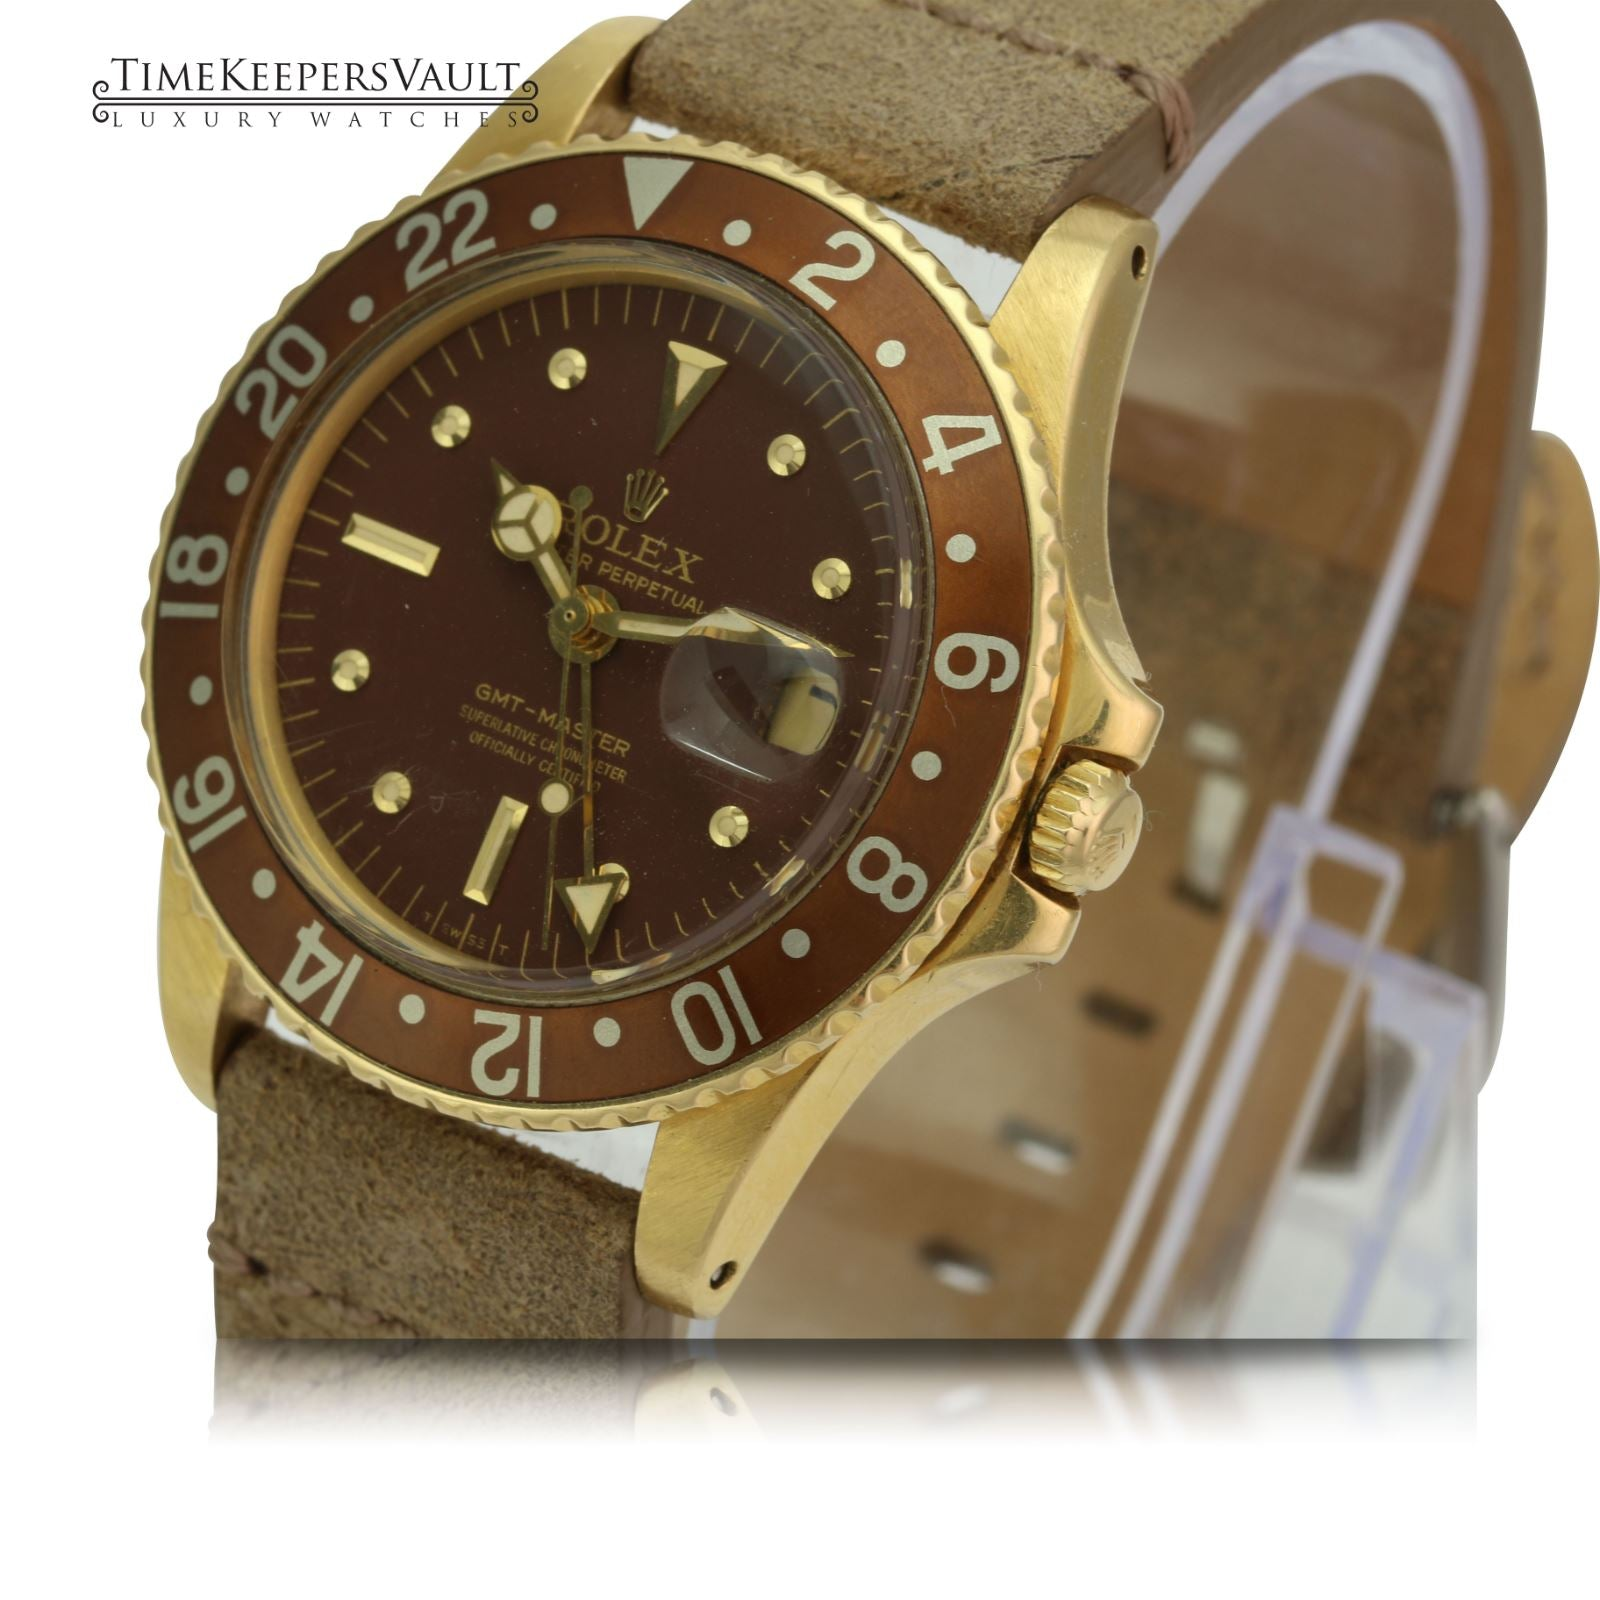 Rolex Vintage GMT-Master 1675 18k Yellow Gold Root beer Brown Nipple Dial Watch - Time Keepers Vault